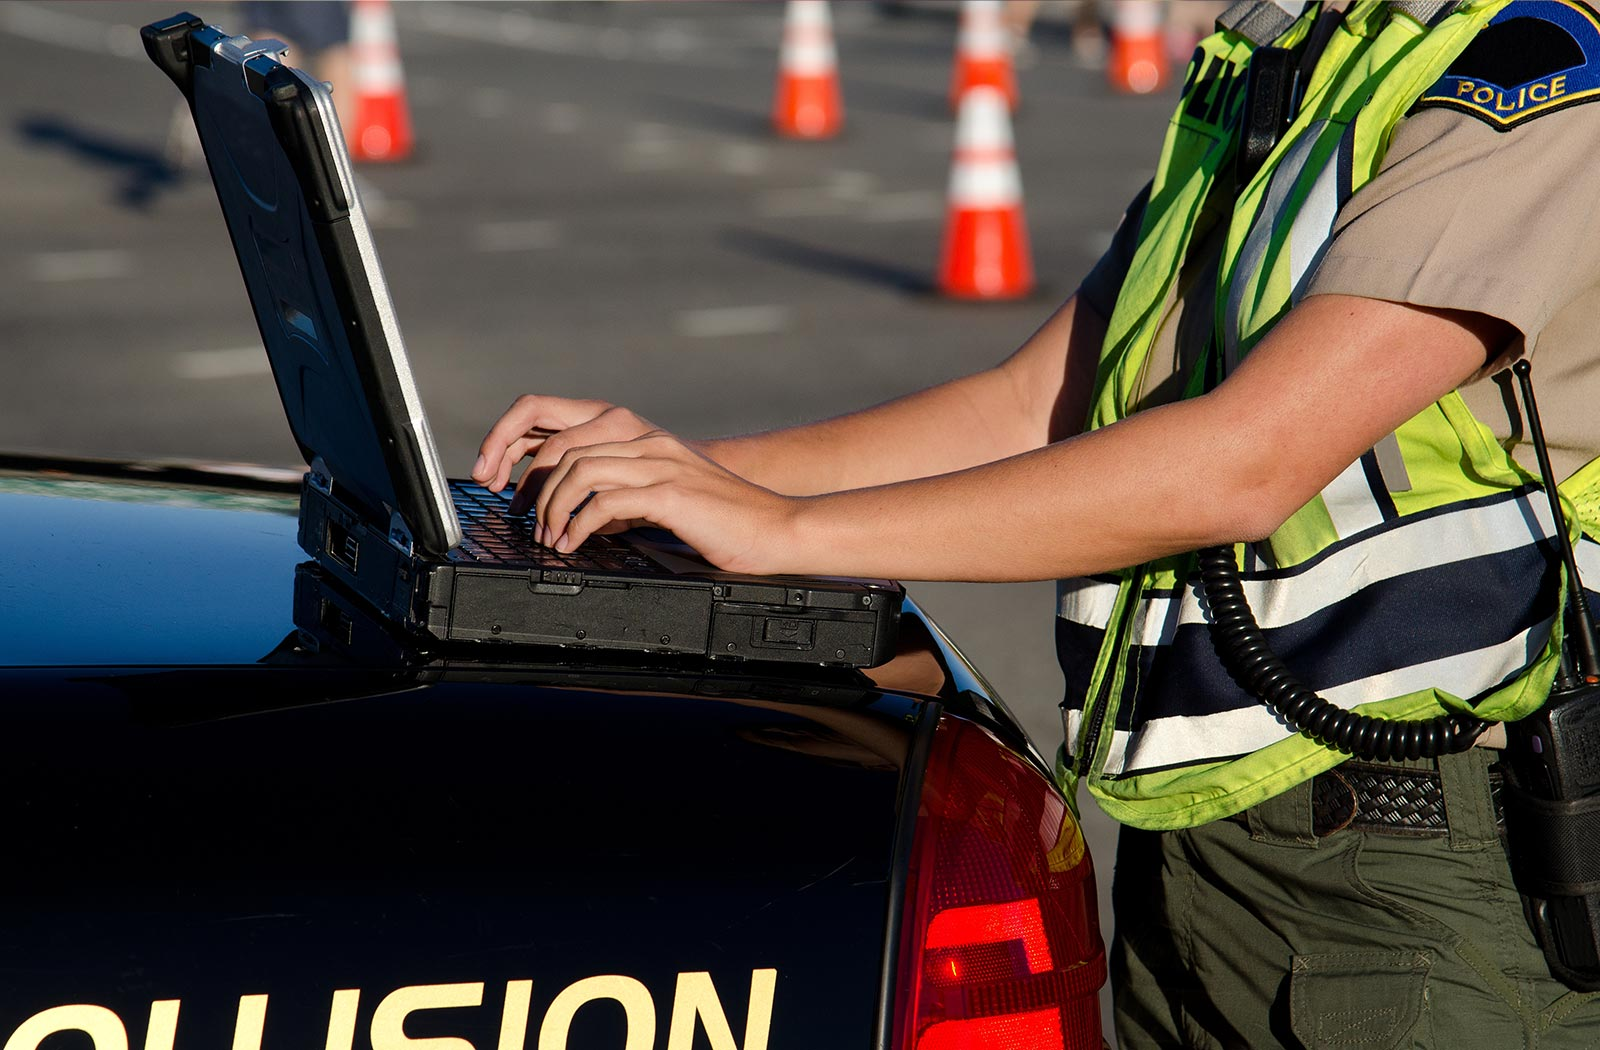 Public safety officer working on a laptop which is rested on a car